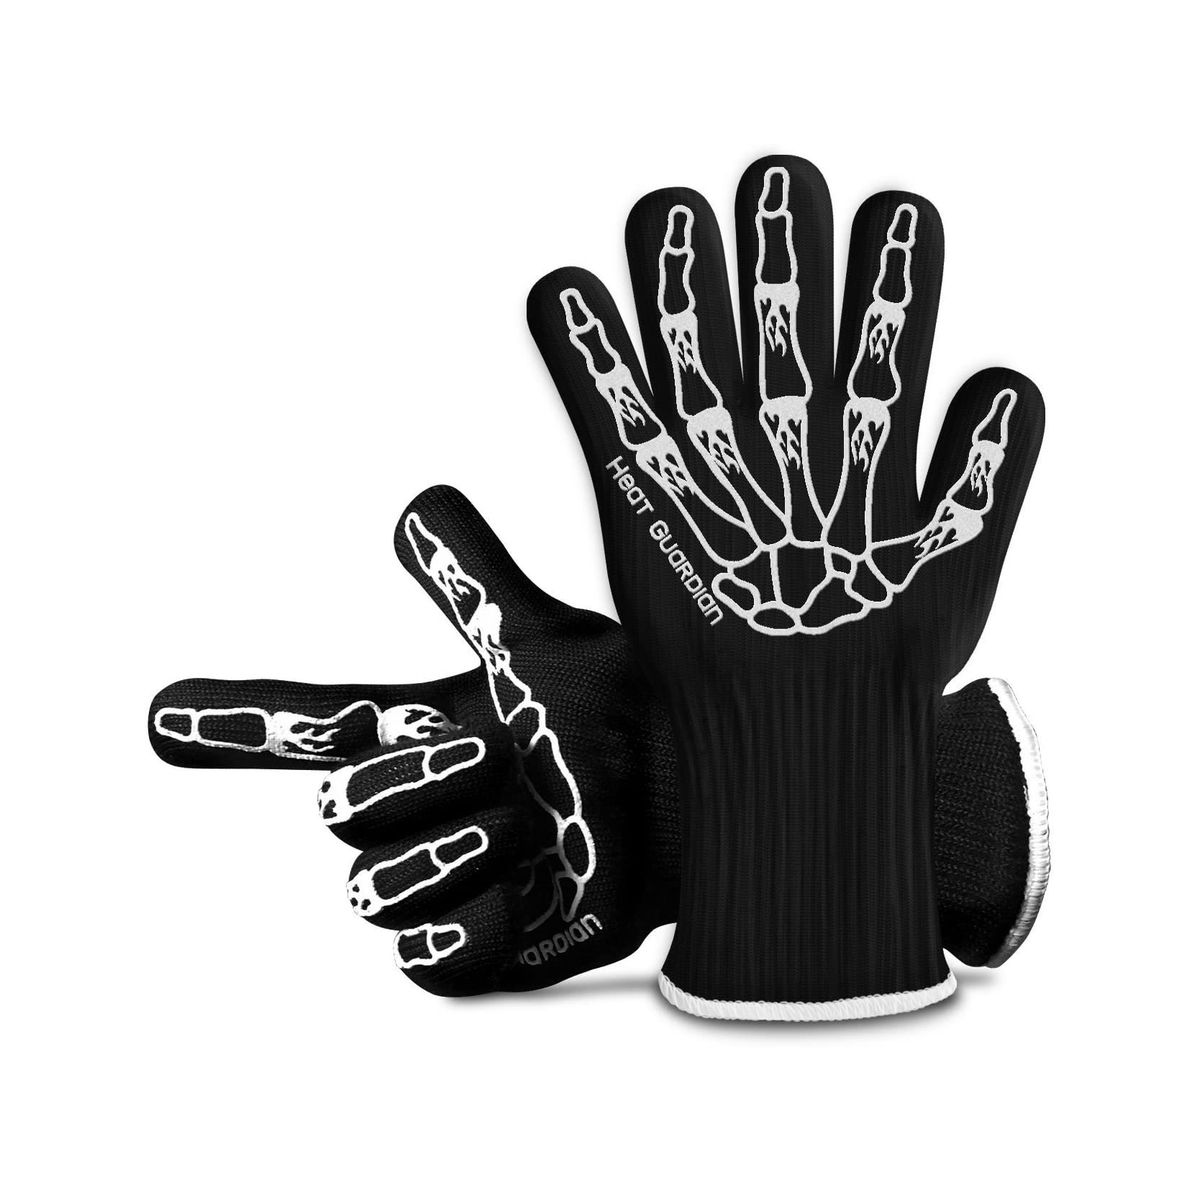 heat guardian protective gloves